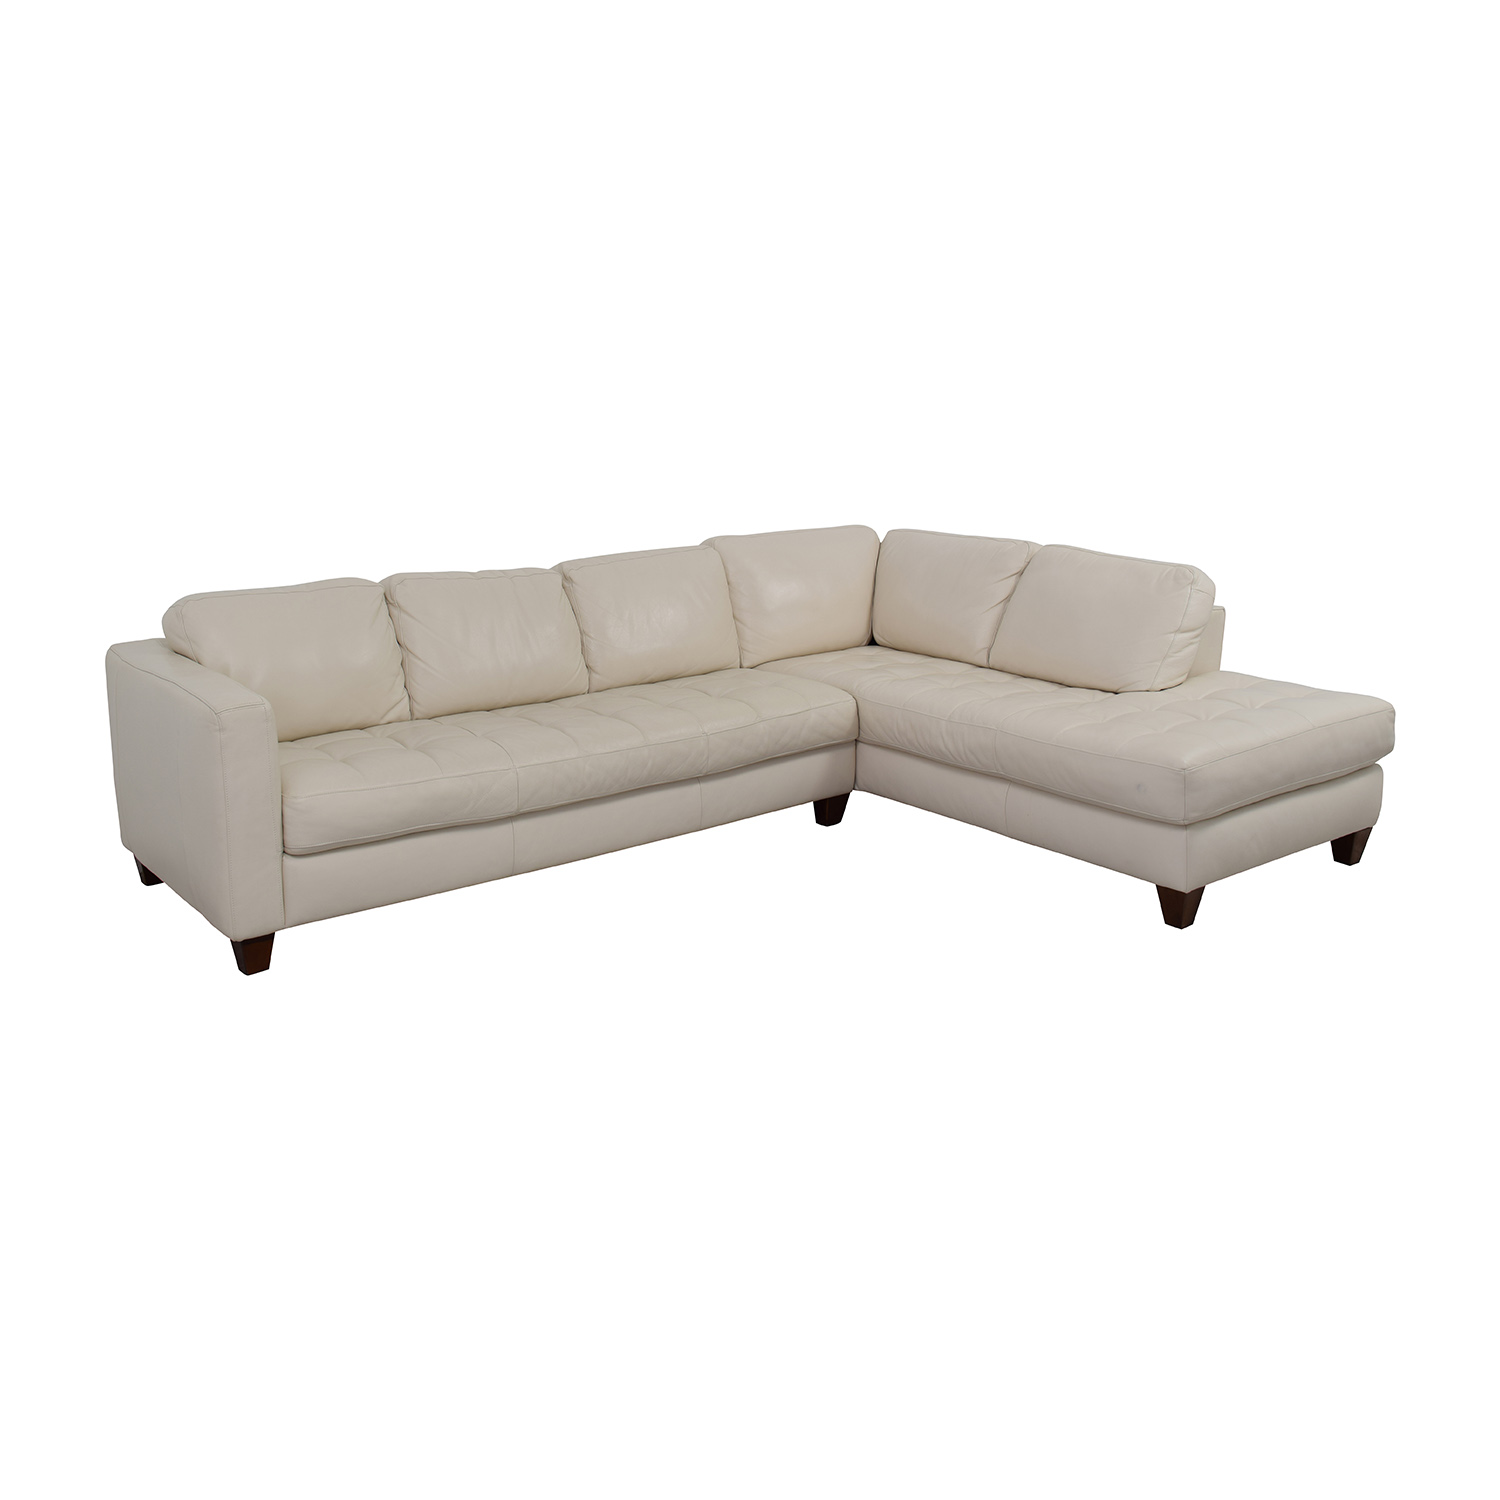 Small Sectional Sofa Dimensions